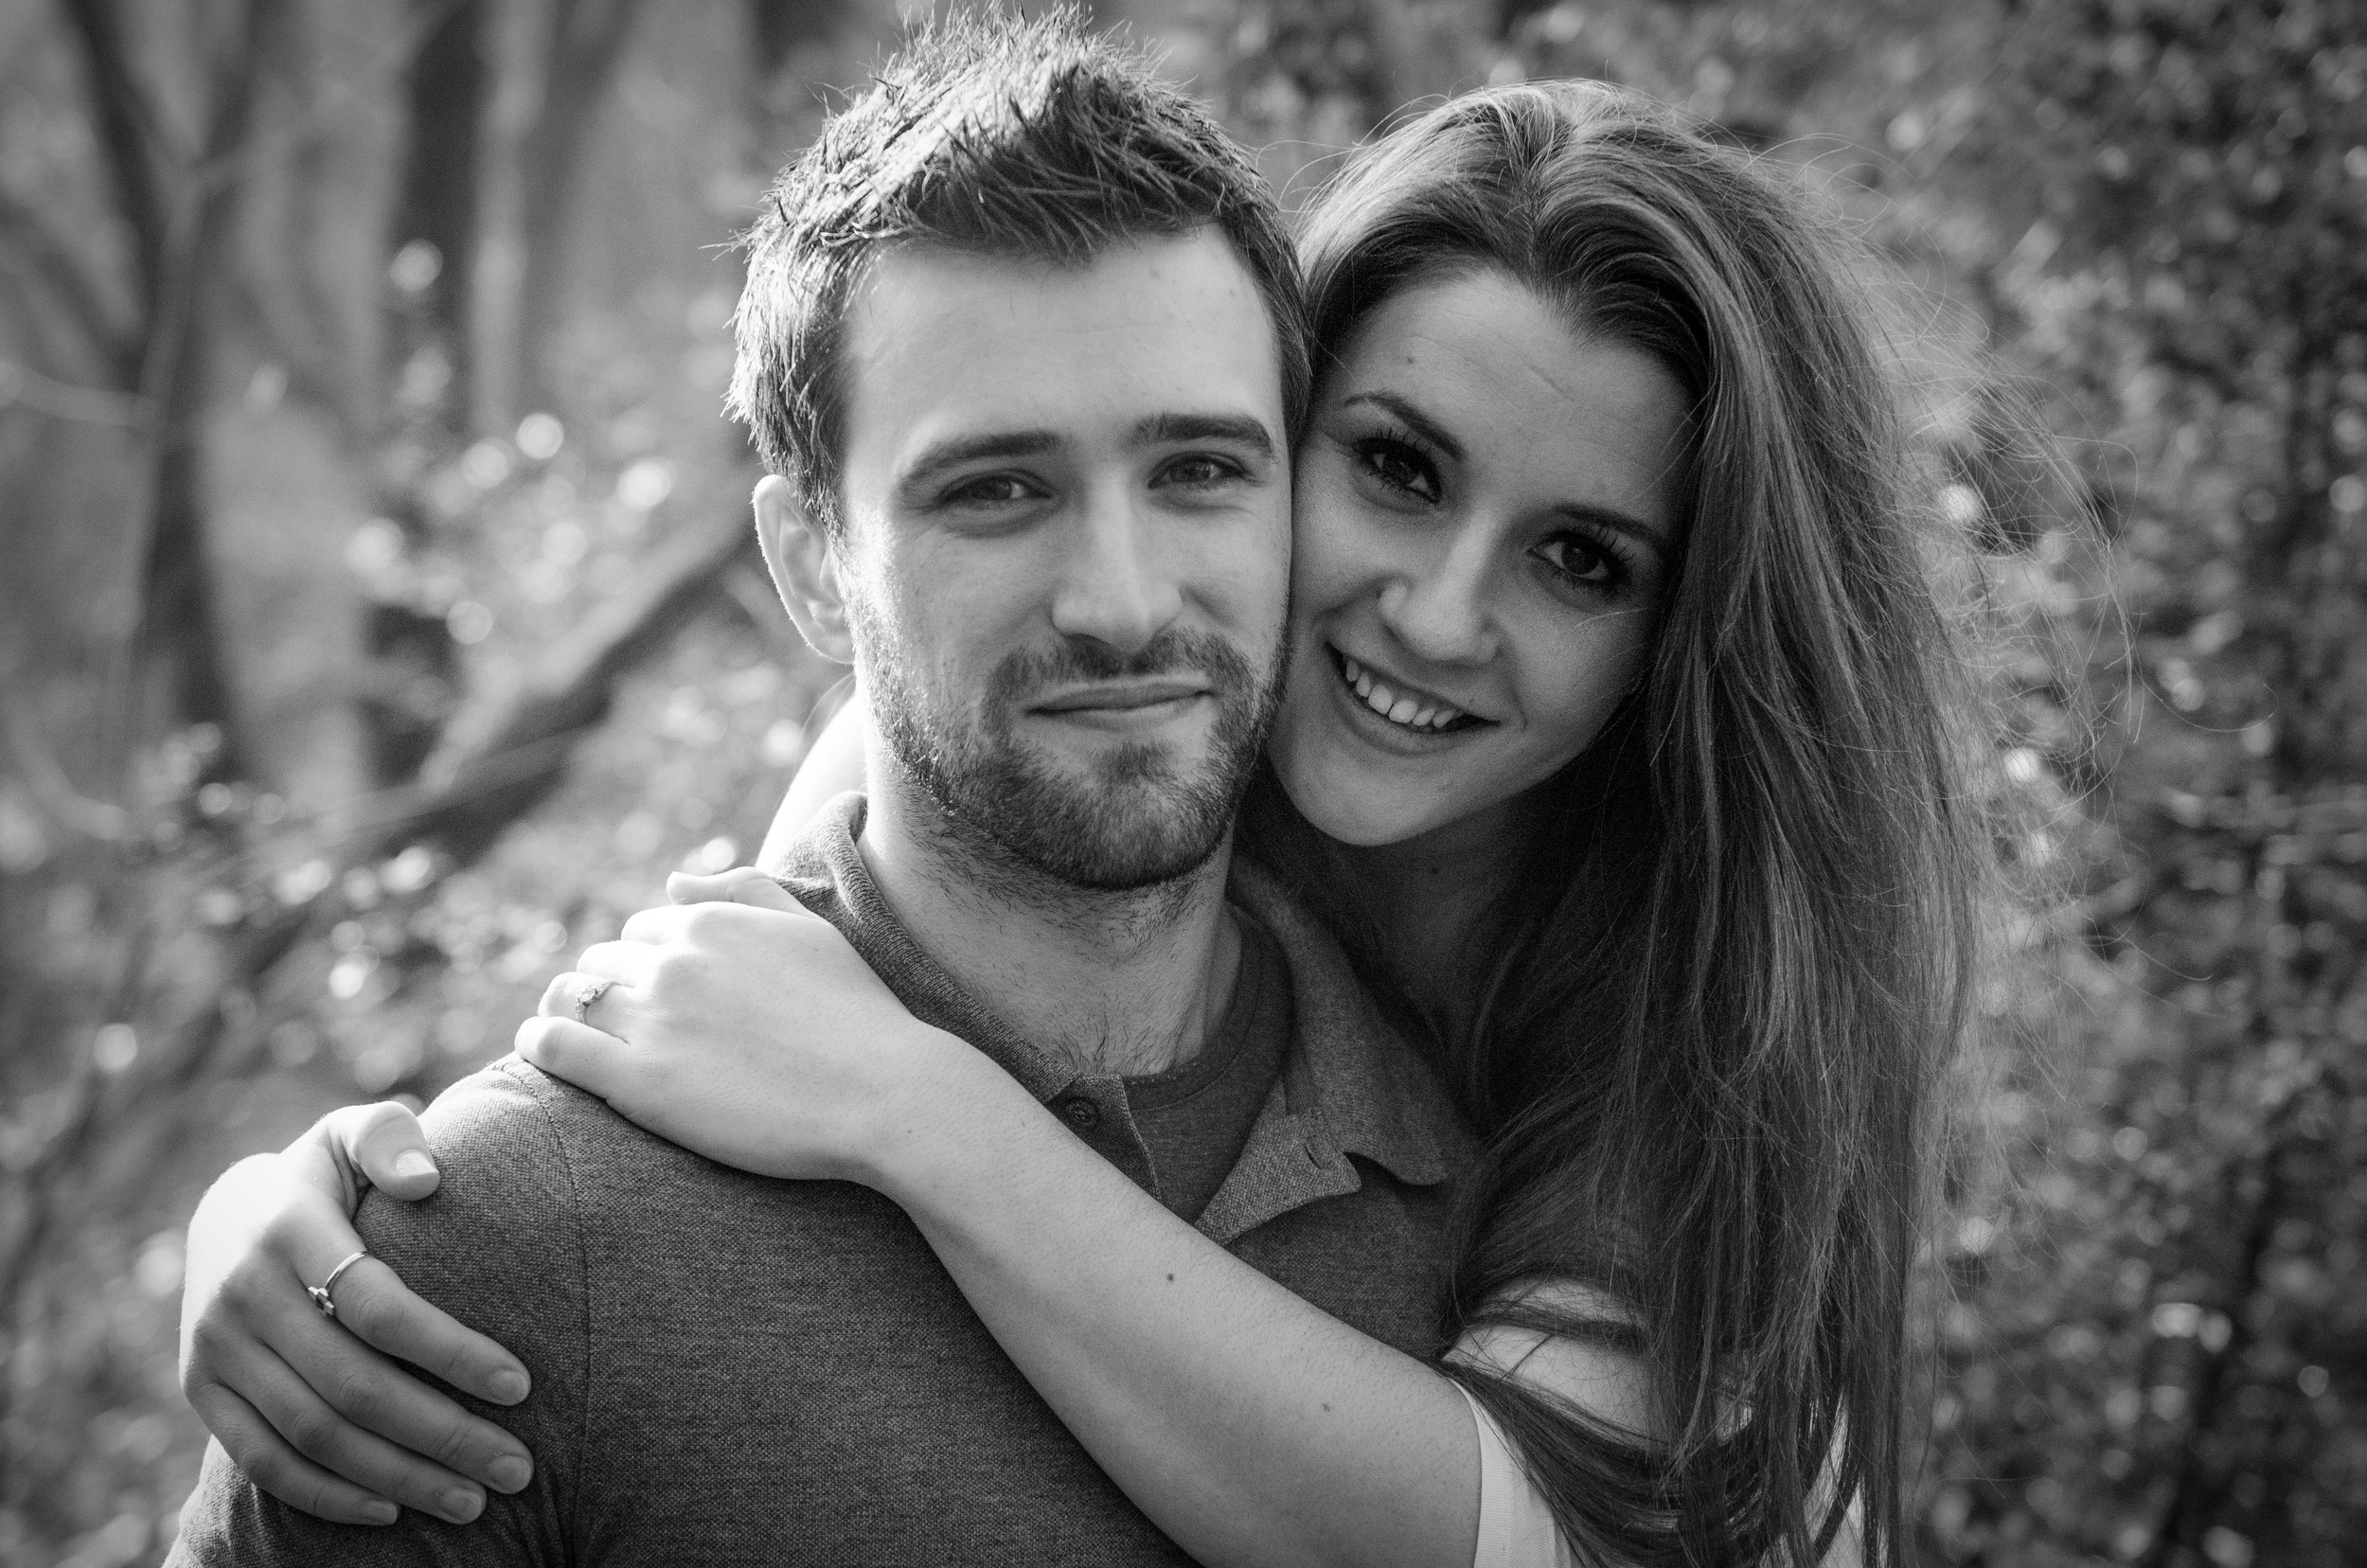 engagement-shoot-at-the-hollies.jpg